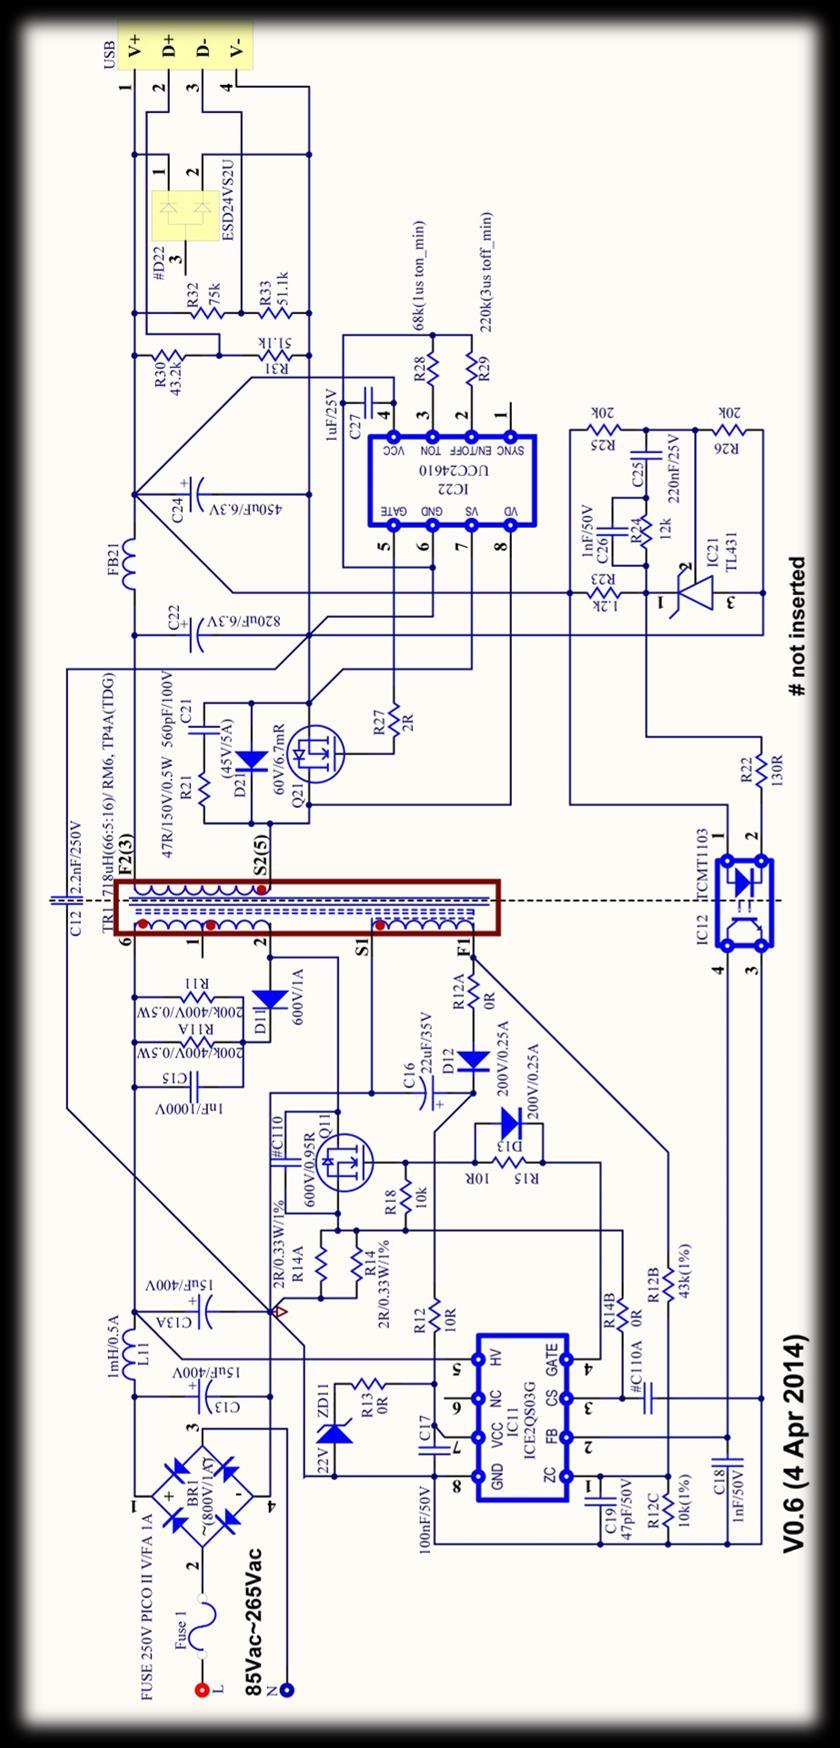 8 Circuit diagram Circuit diagram Figure 3 15W 5V ICEICE2QSO3G power